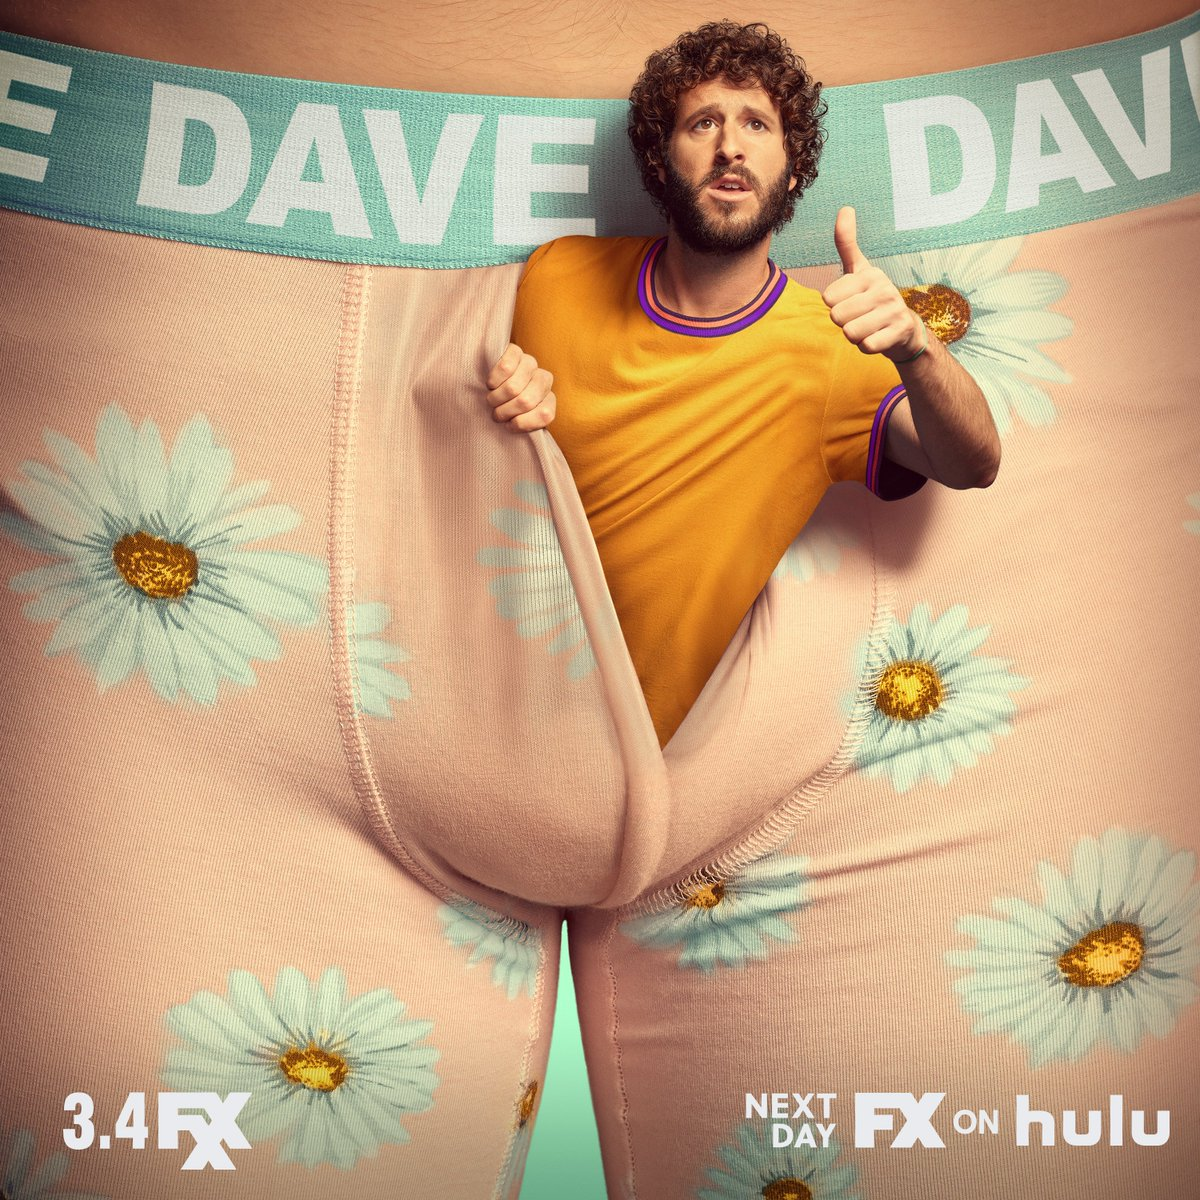 have you met the guy behind the guy? DAVE, starring @lildickytweets premieres march 4 on fxx & next day on #FXonHulu